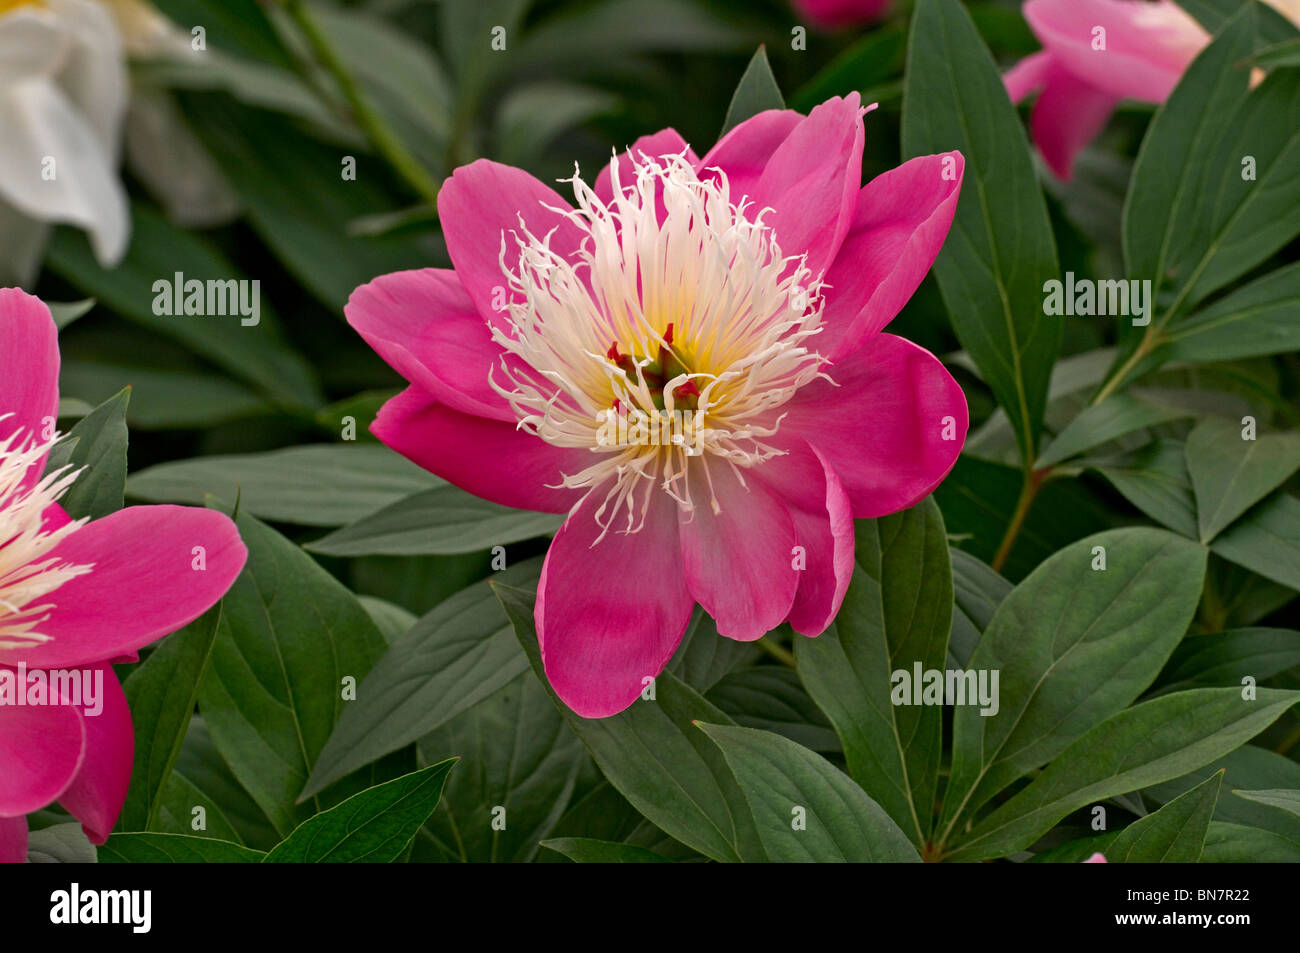 Herbaceous Peonies 'Bowl of Beauty' in flower - Stock Image